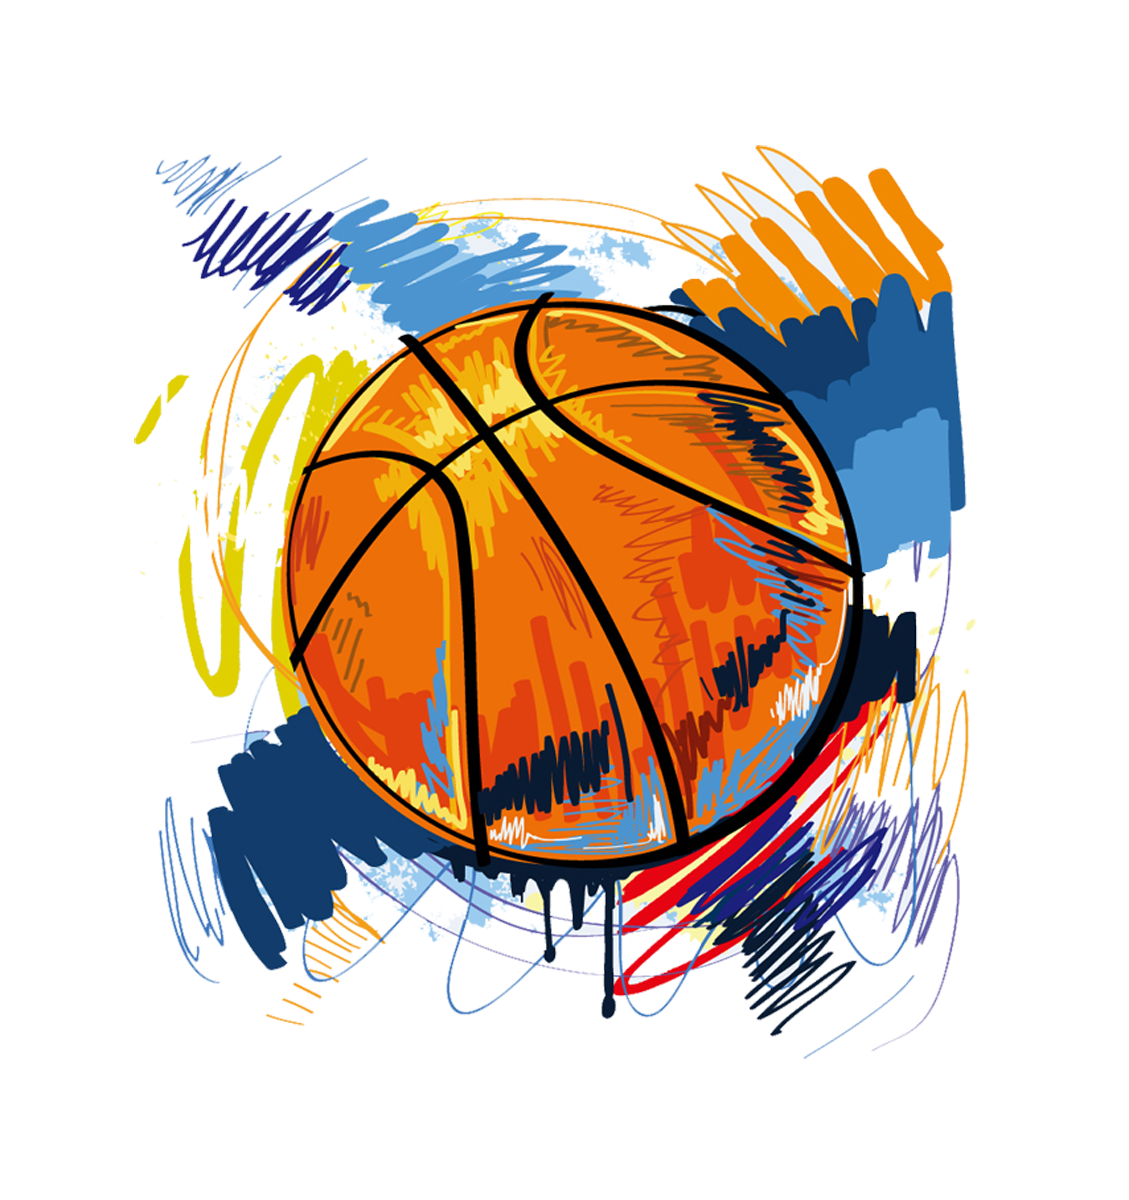 Basketball lines on ball clipart clipart T-shirt Basketball Graffiti Illustration - basketball 1129*1200 ... clipart